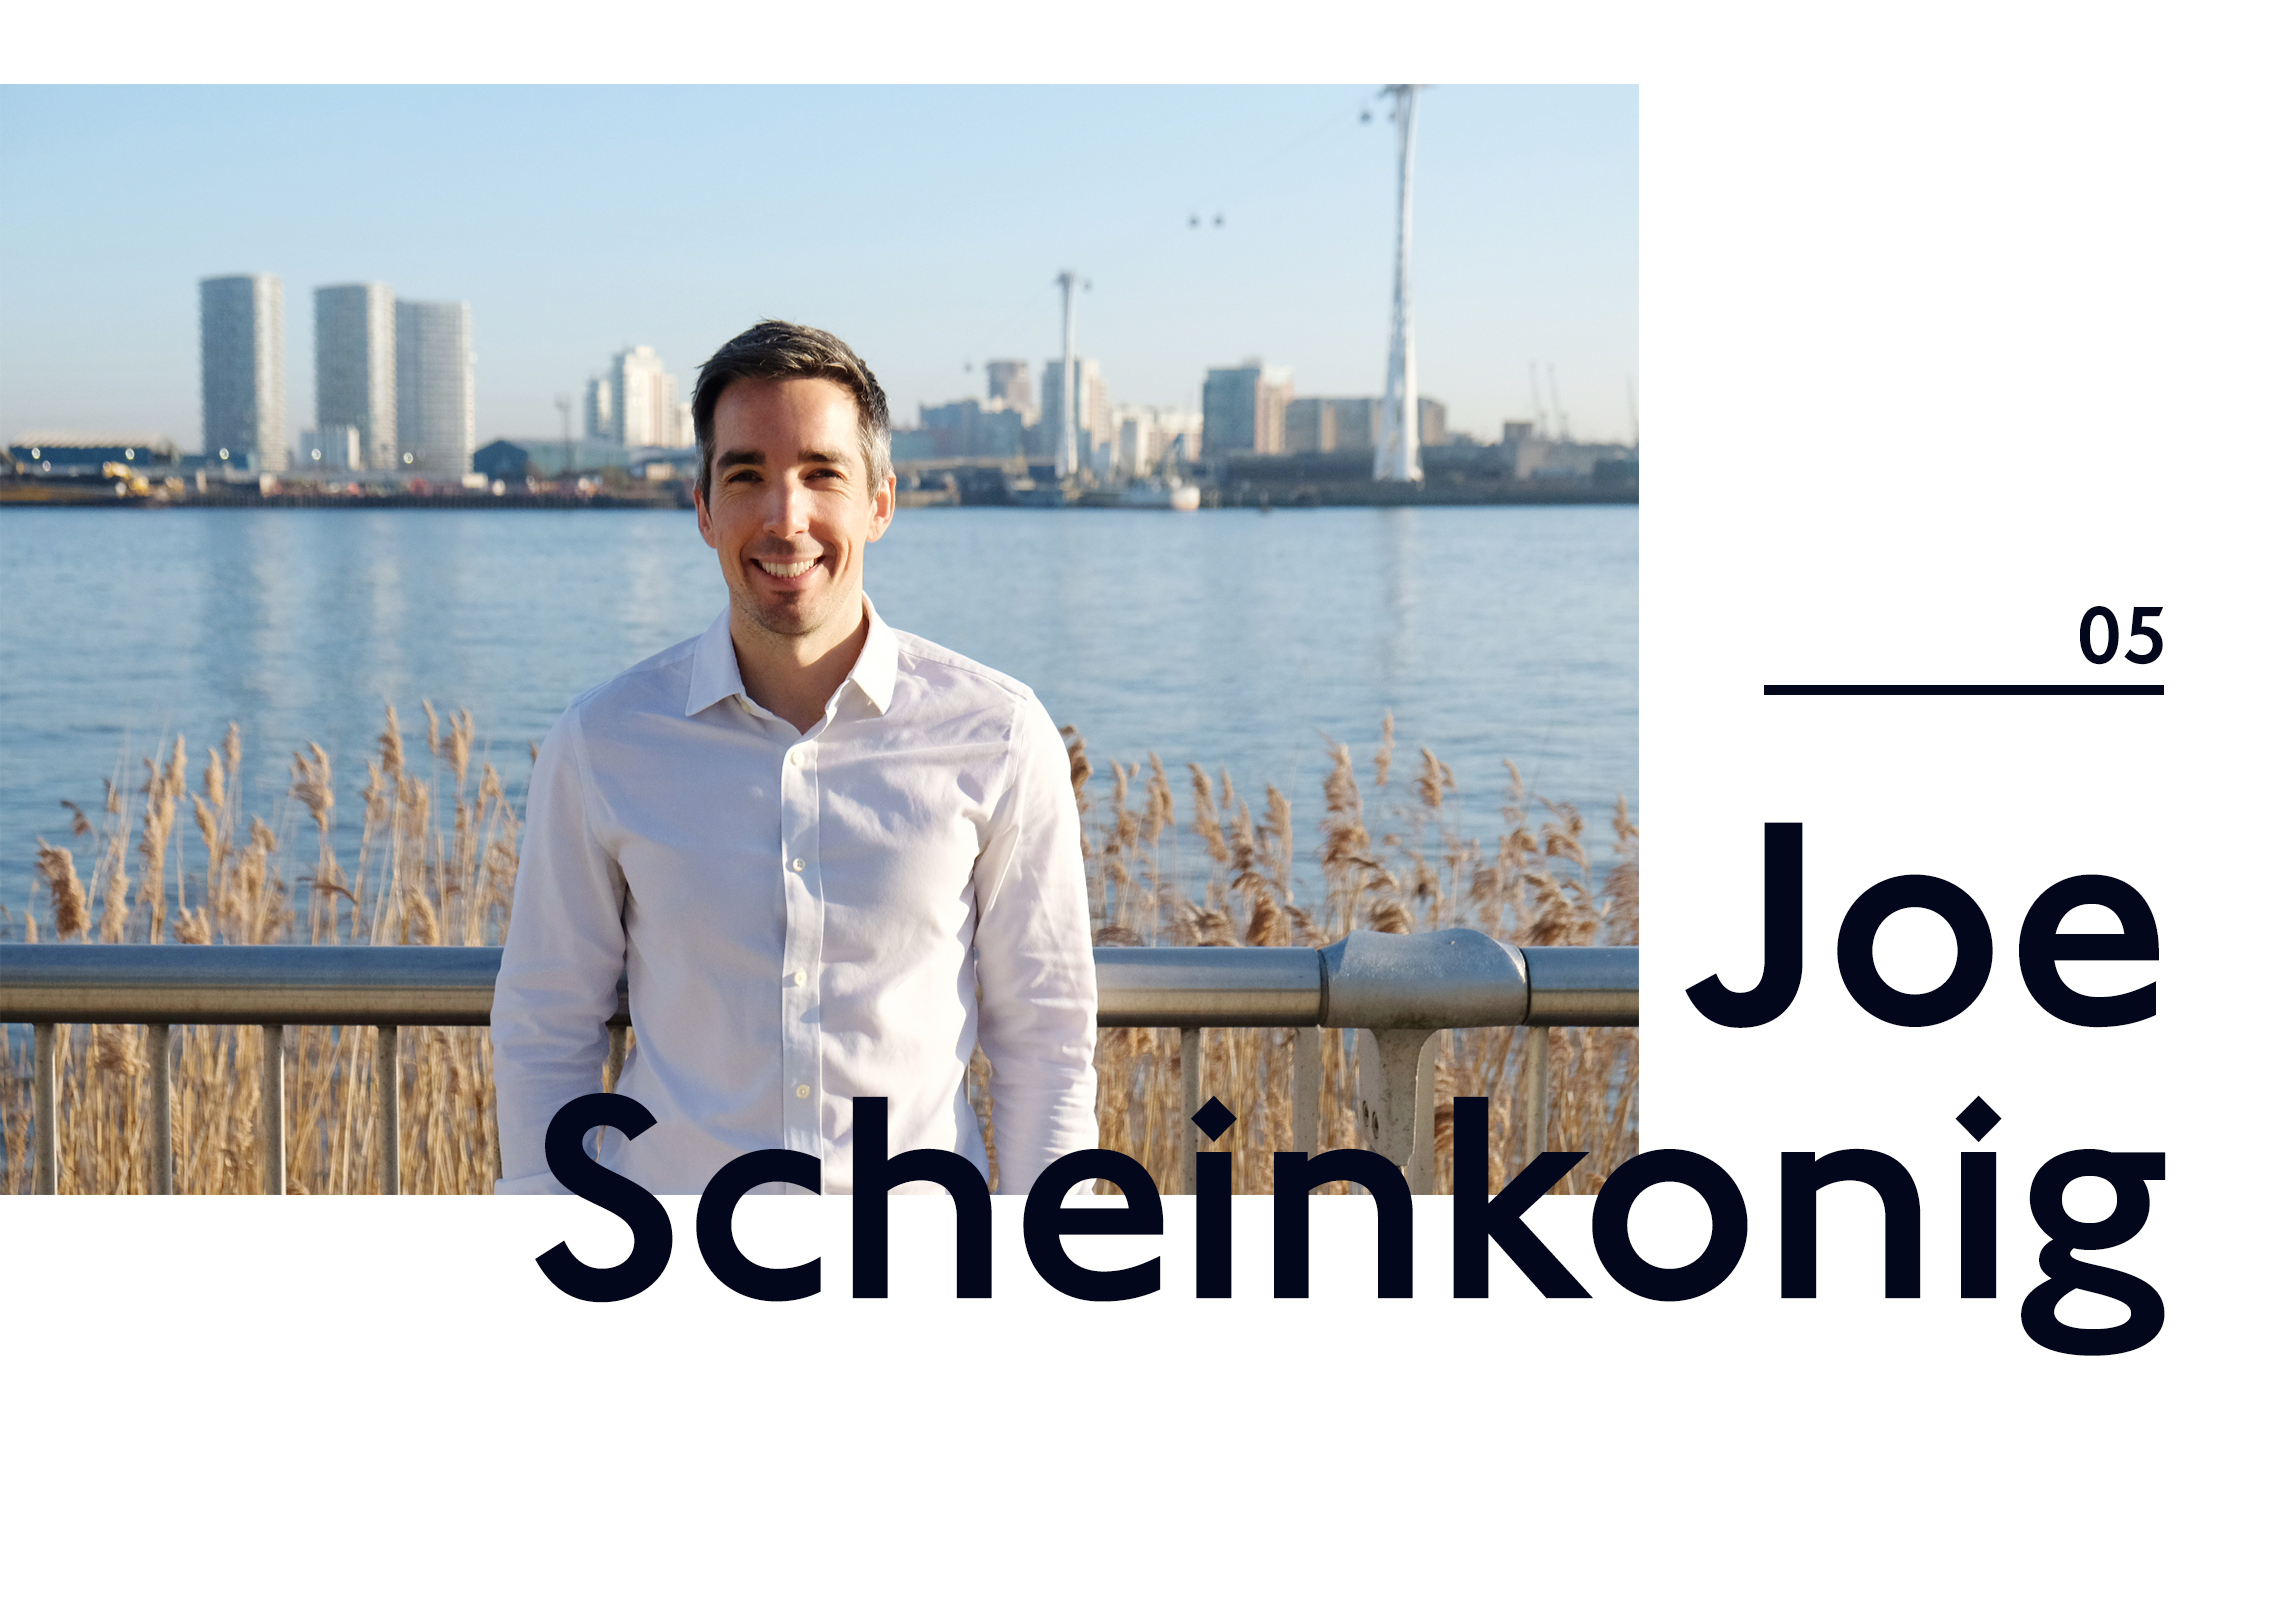 Picture of Joe Scheinkonig from Commercial Media